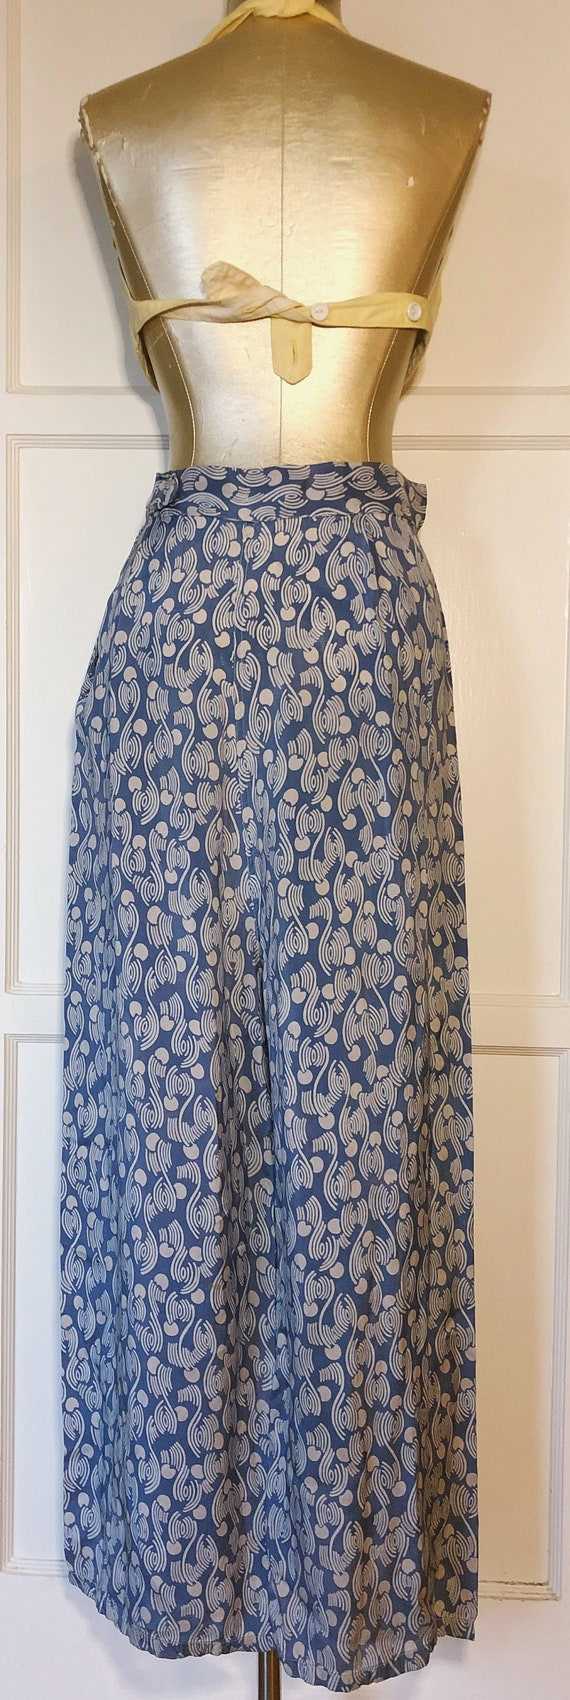 1940s Blue and White Lounge Pants - image 2